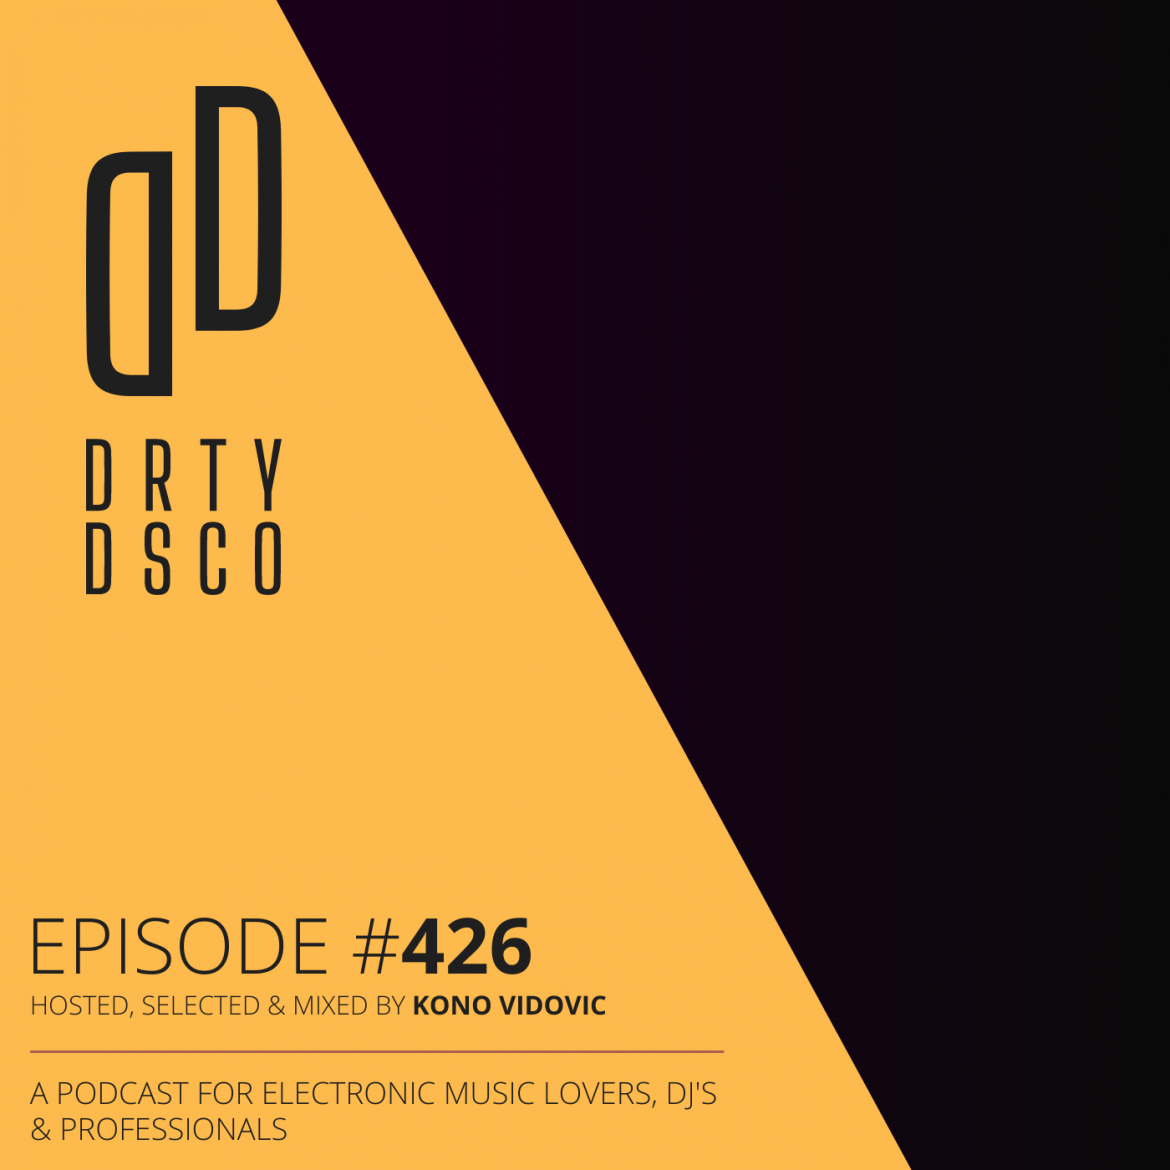 Dirty Disco 426 - Mixed Playlist Music